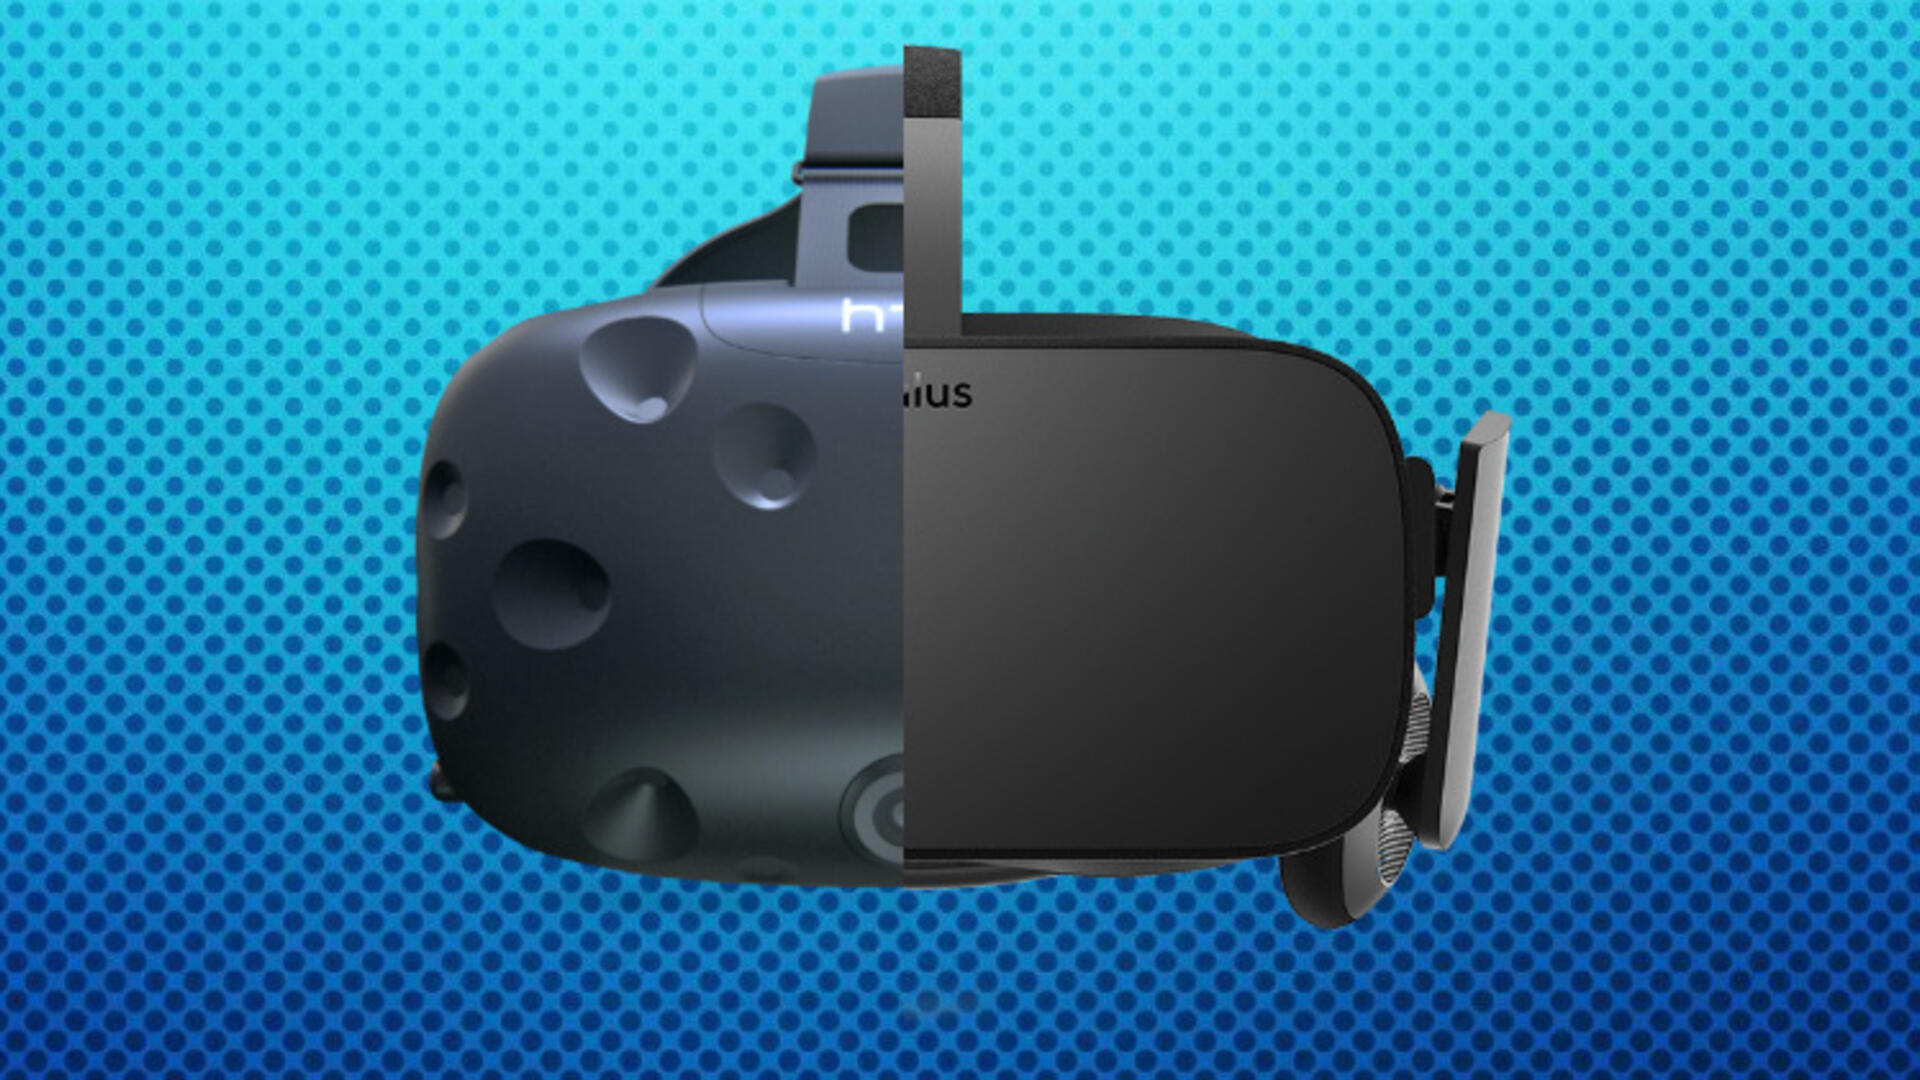 Oculus Rift and HTC Vive Launches Handicapped by Shipping Delays